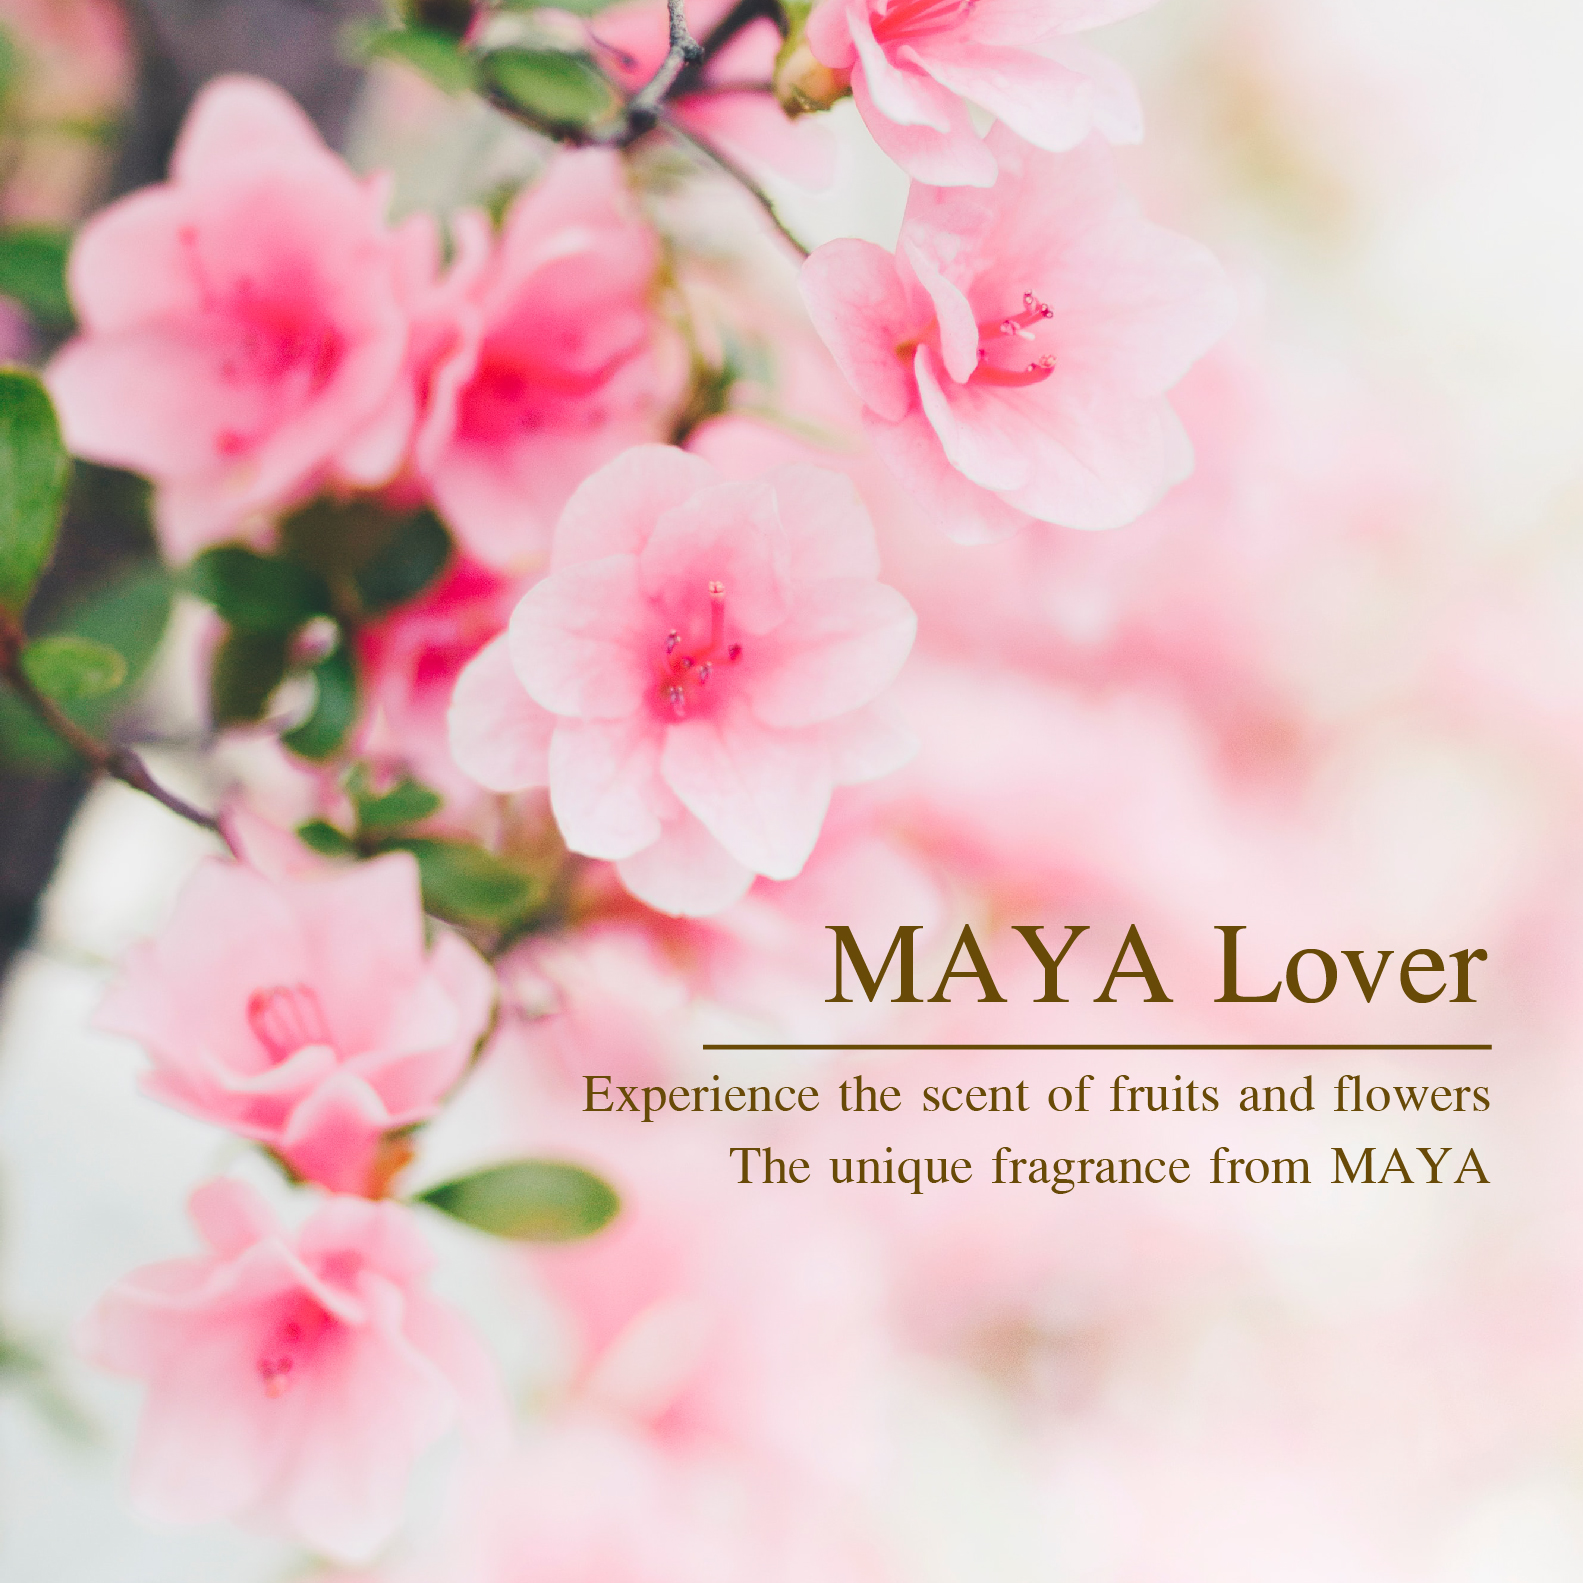 """Reed Diffuser """"MAYA Lover"""" Experience the scent of fruits and flowers the unique fragrance from MAYA"""